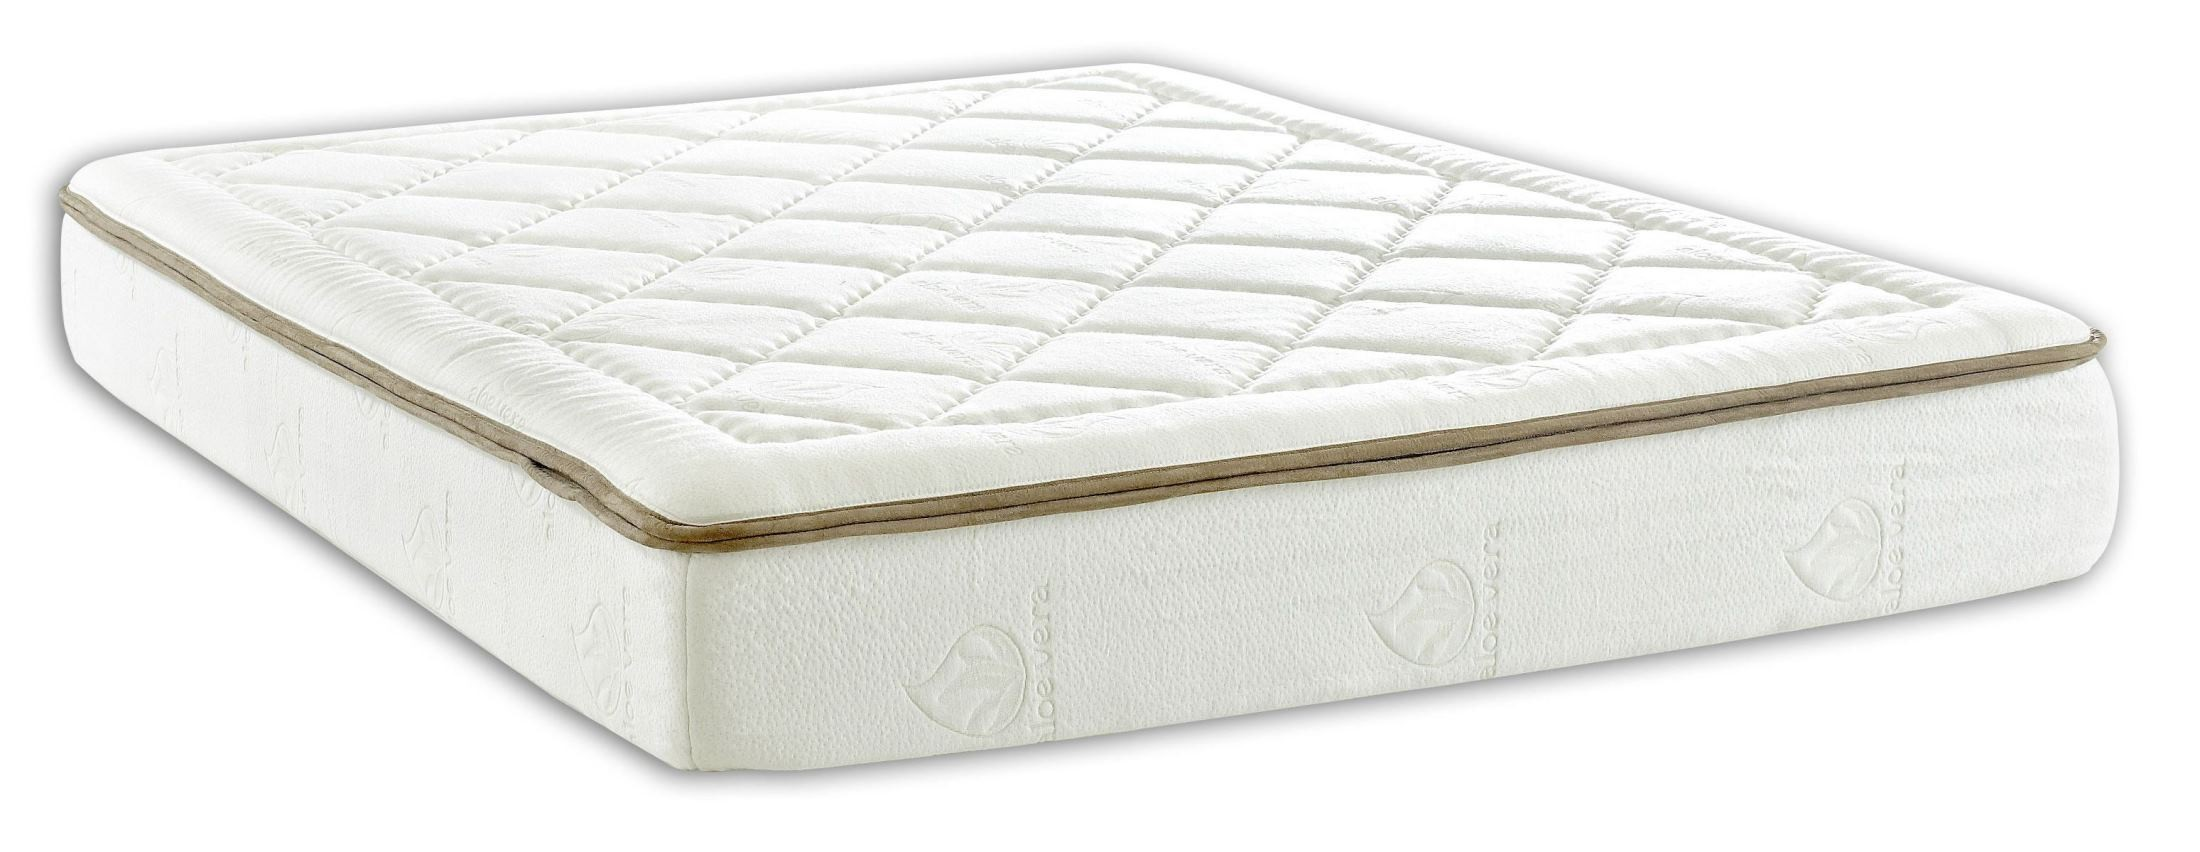 Dream Weaver 10 Extra Large Twin Memory Foam Mattress From Klaussner Drmwvrtxtmat Coleman